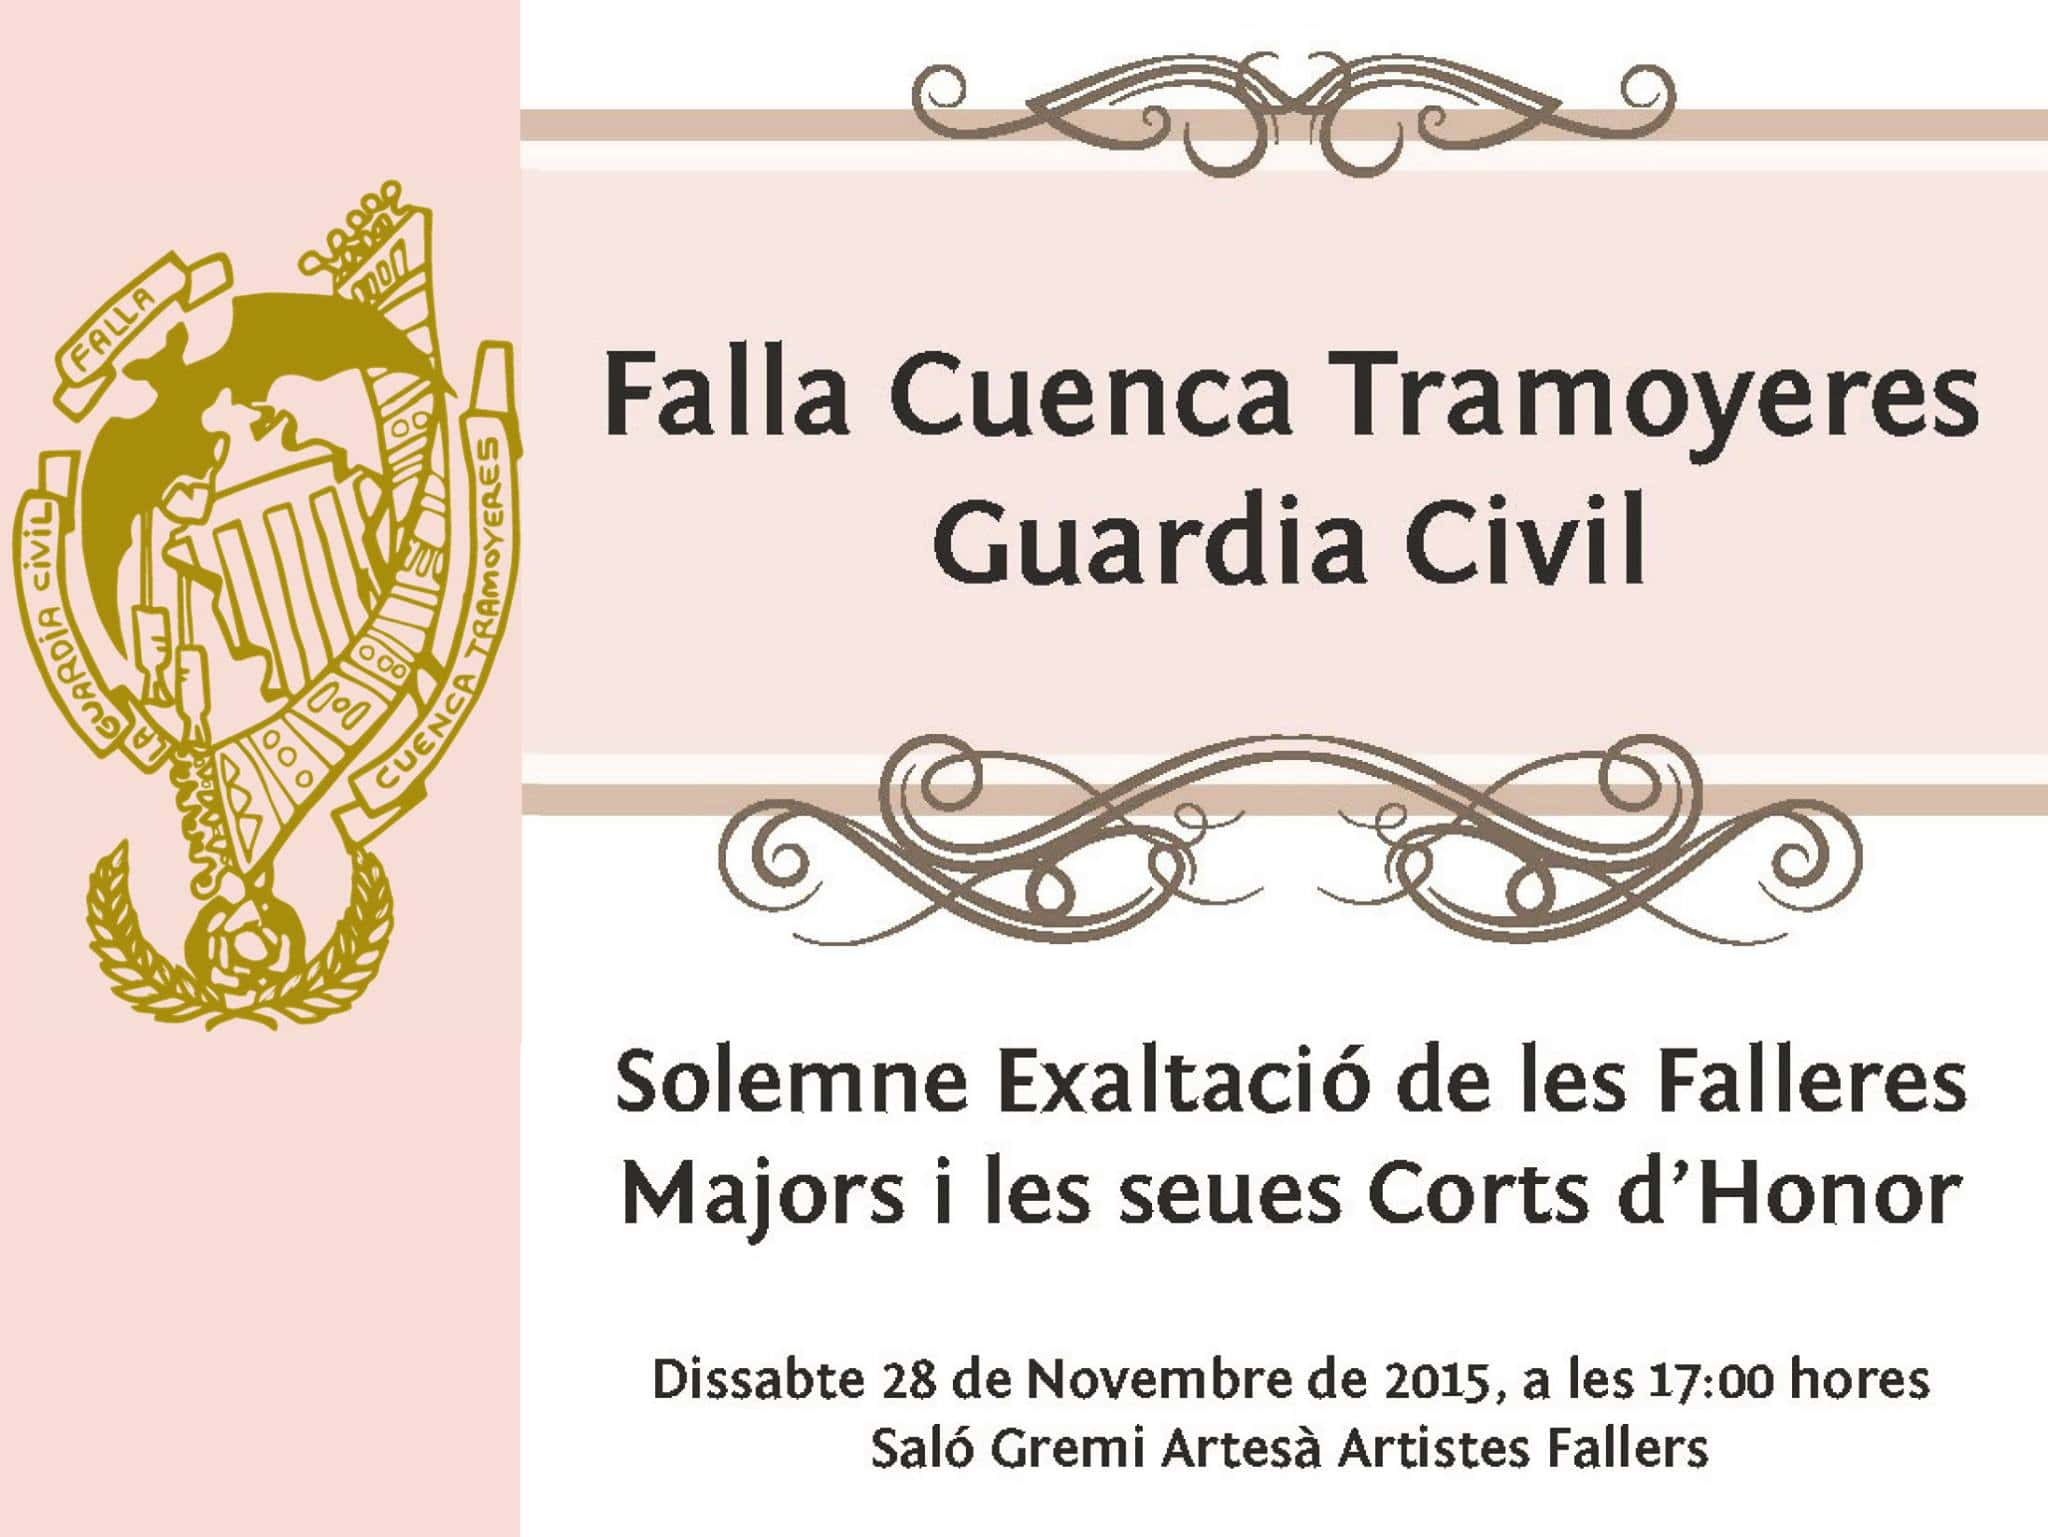 Exaltation of the Falleras older of the Falla basin Tramoyeres-Guardia Civil the Fallas by 2016